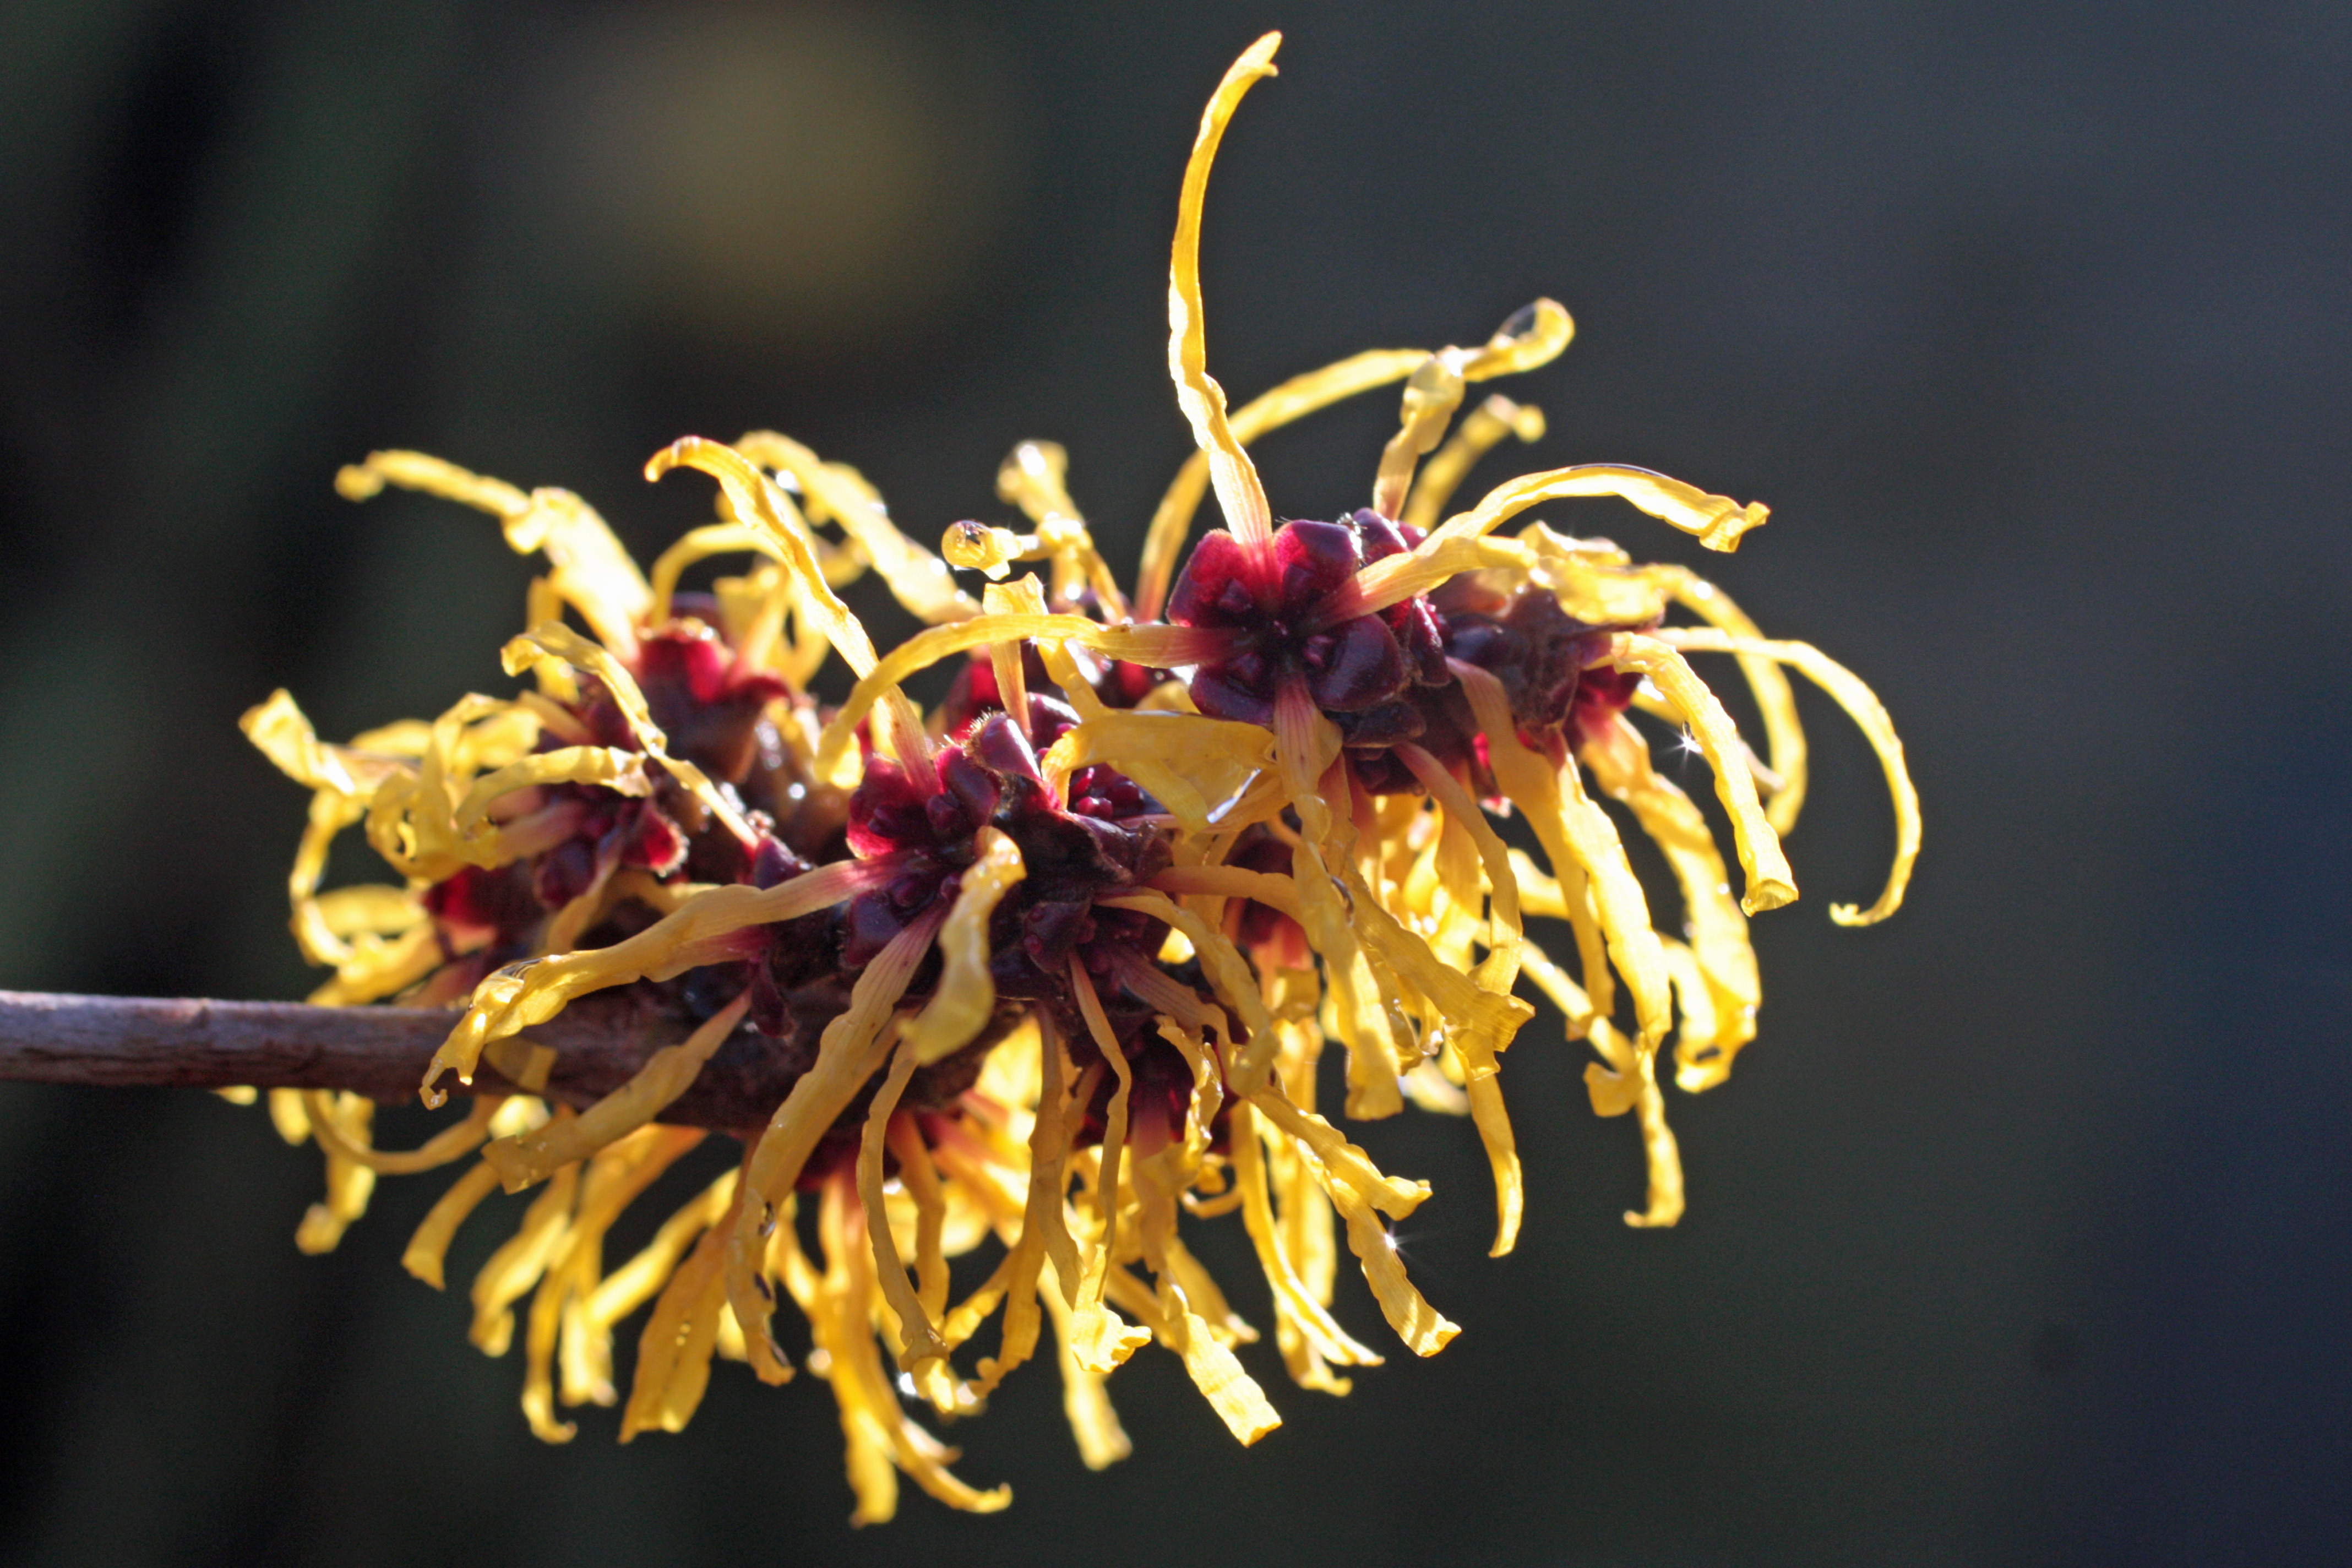 witch hazel flowers are favored by chinese for their strong fragrance With their similar common names and some similar characteristics, winter hazel and witch hazel can be easy to confuse here are the differences between these treasured shrubs that flower when little else is in bloom witch hazels grow between 10 and 20 feet tall and most have a vase shape with.